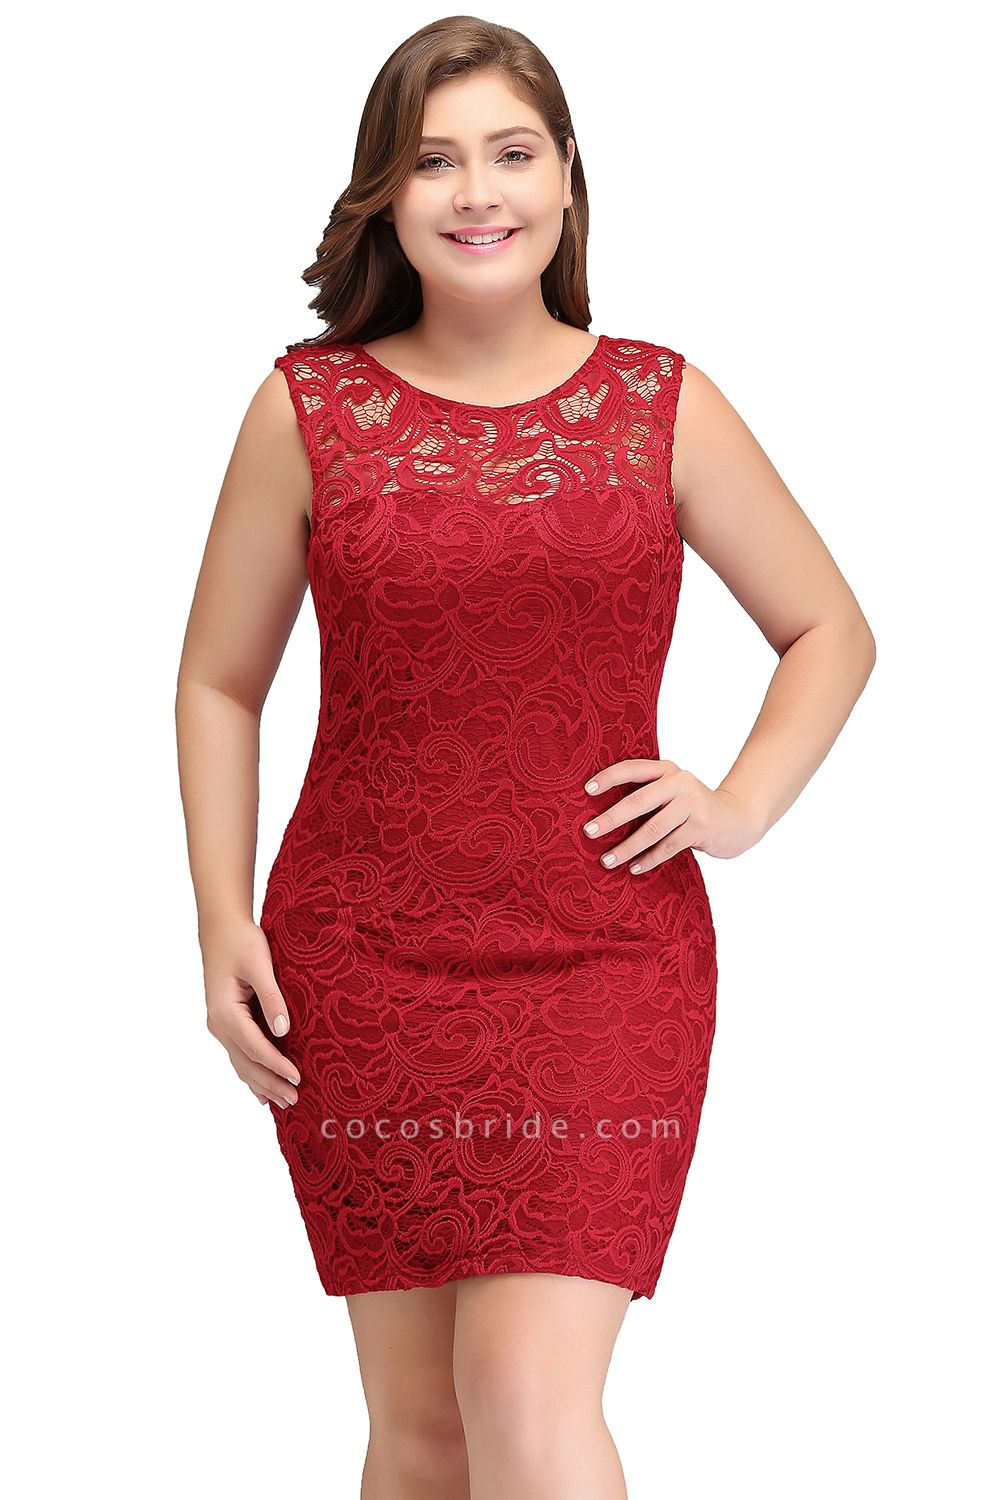 JAMIE | Mermaid Scoop Plus size Short Sleeveless Lace Cocktail Dresses